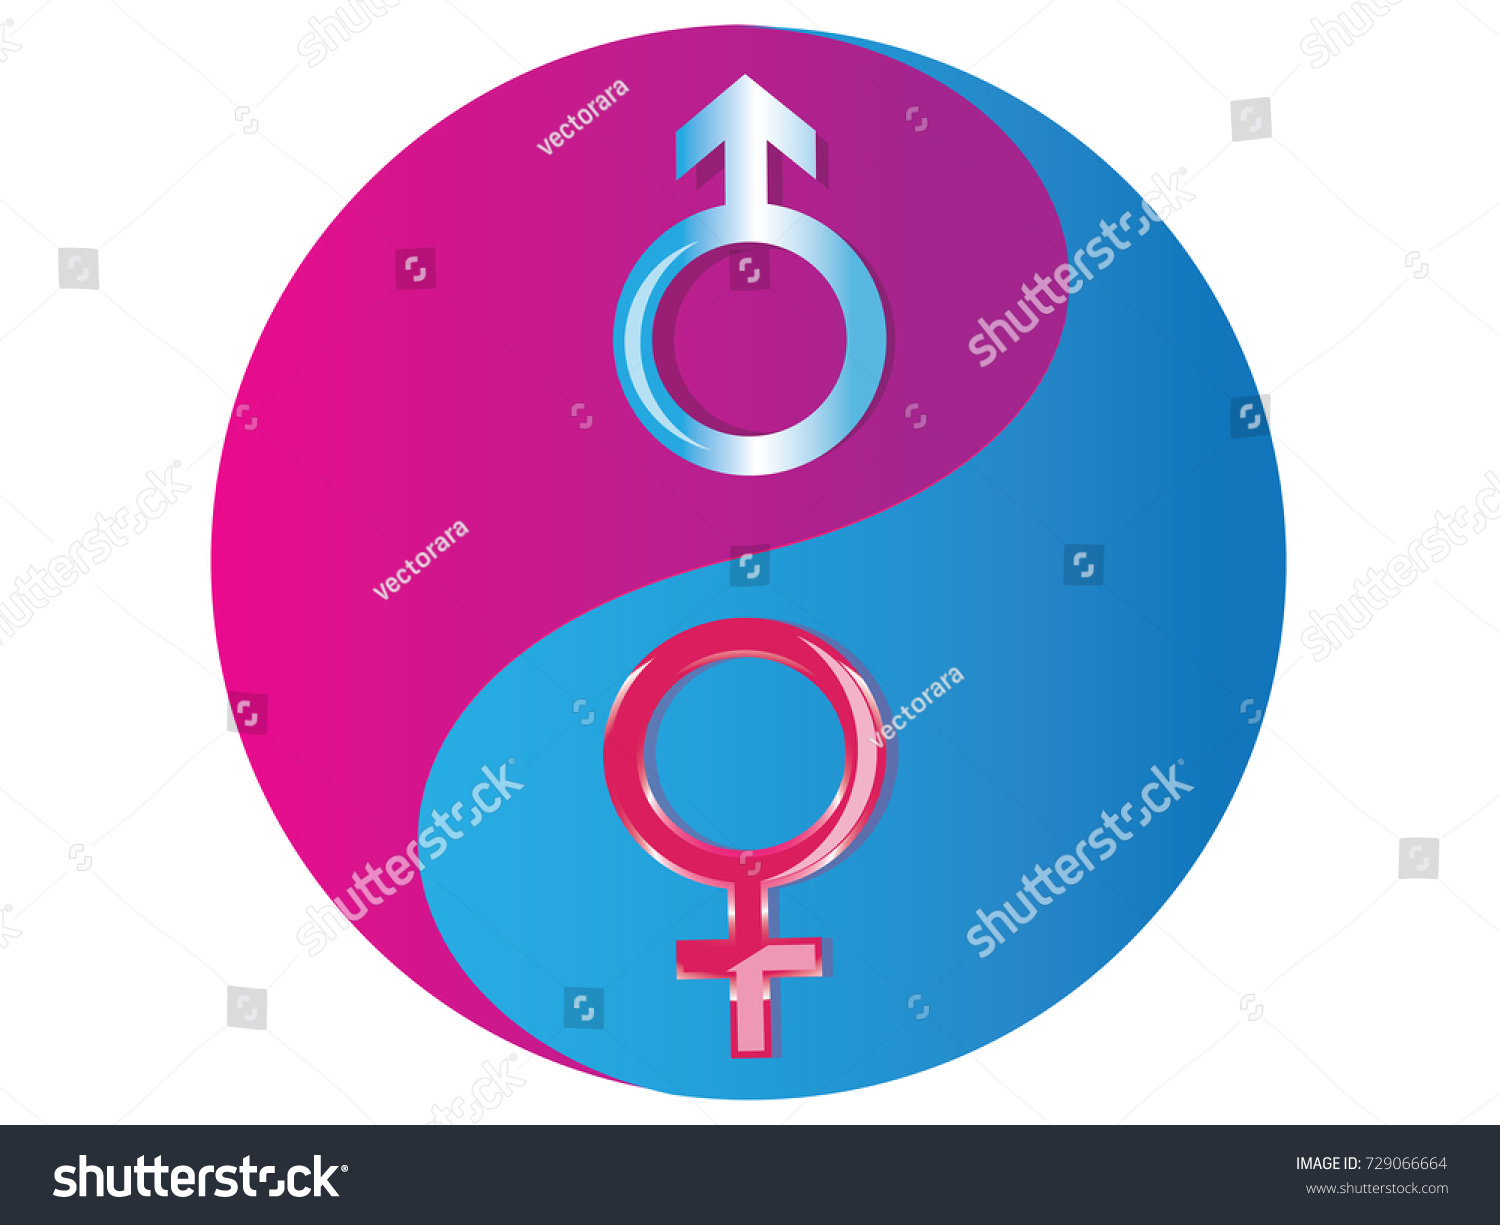 Female male yin yang symbolvector stock vector 729066664 female and male yin yang symbolctor biocorpaavc